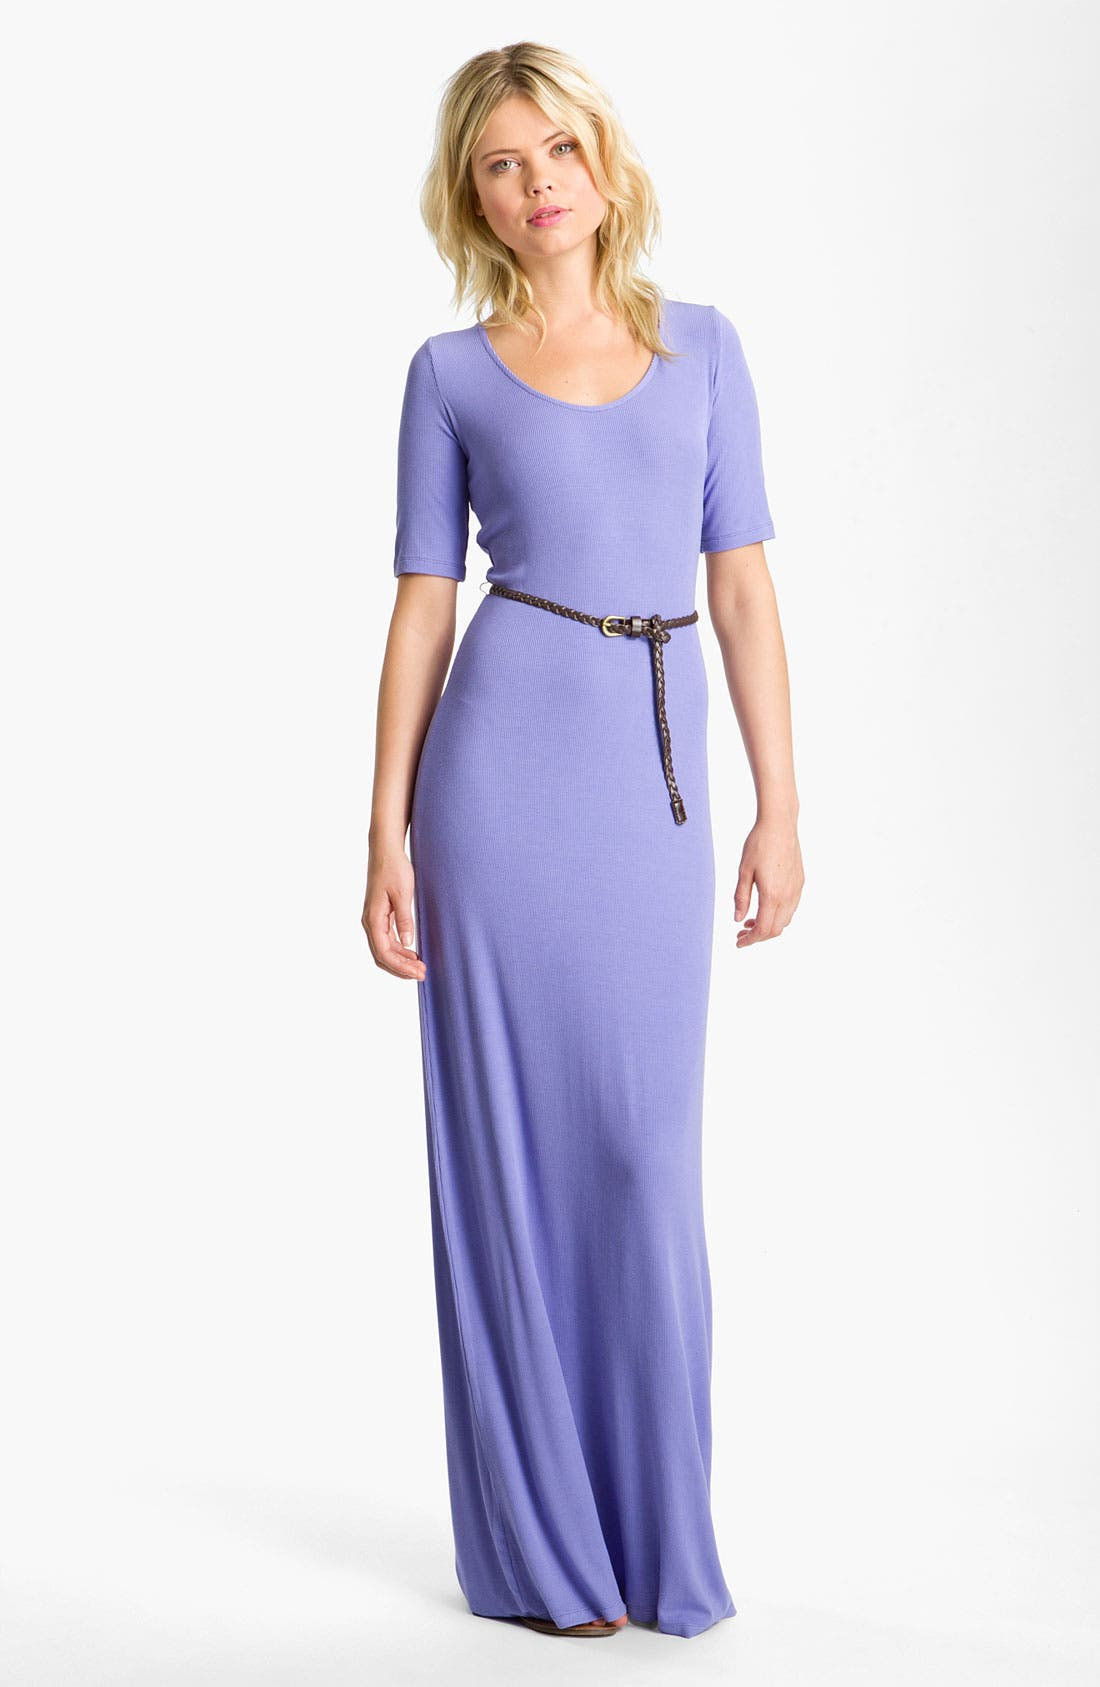 Alternate Image 1 Selected - Felicity & Coco Belted Jersey Maxi Dress (Nordstrom Exclusive)